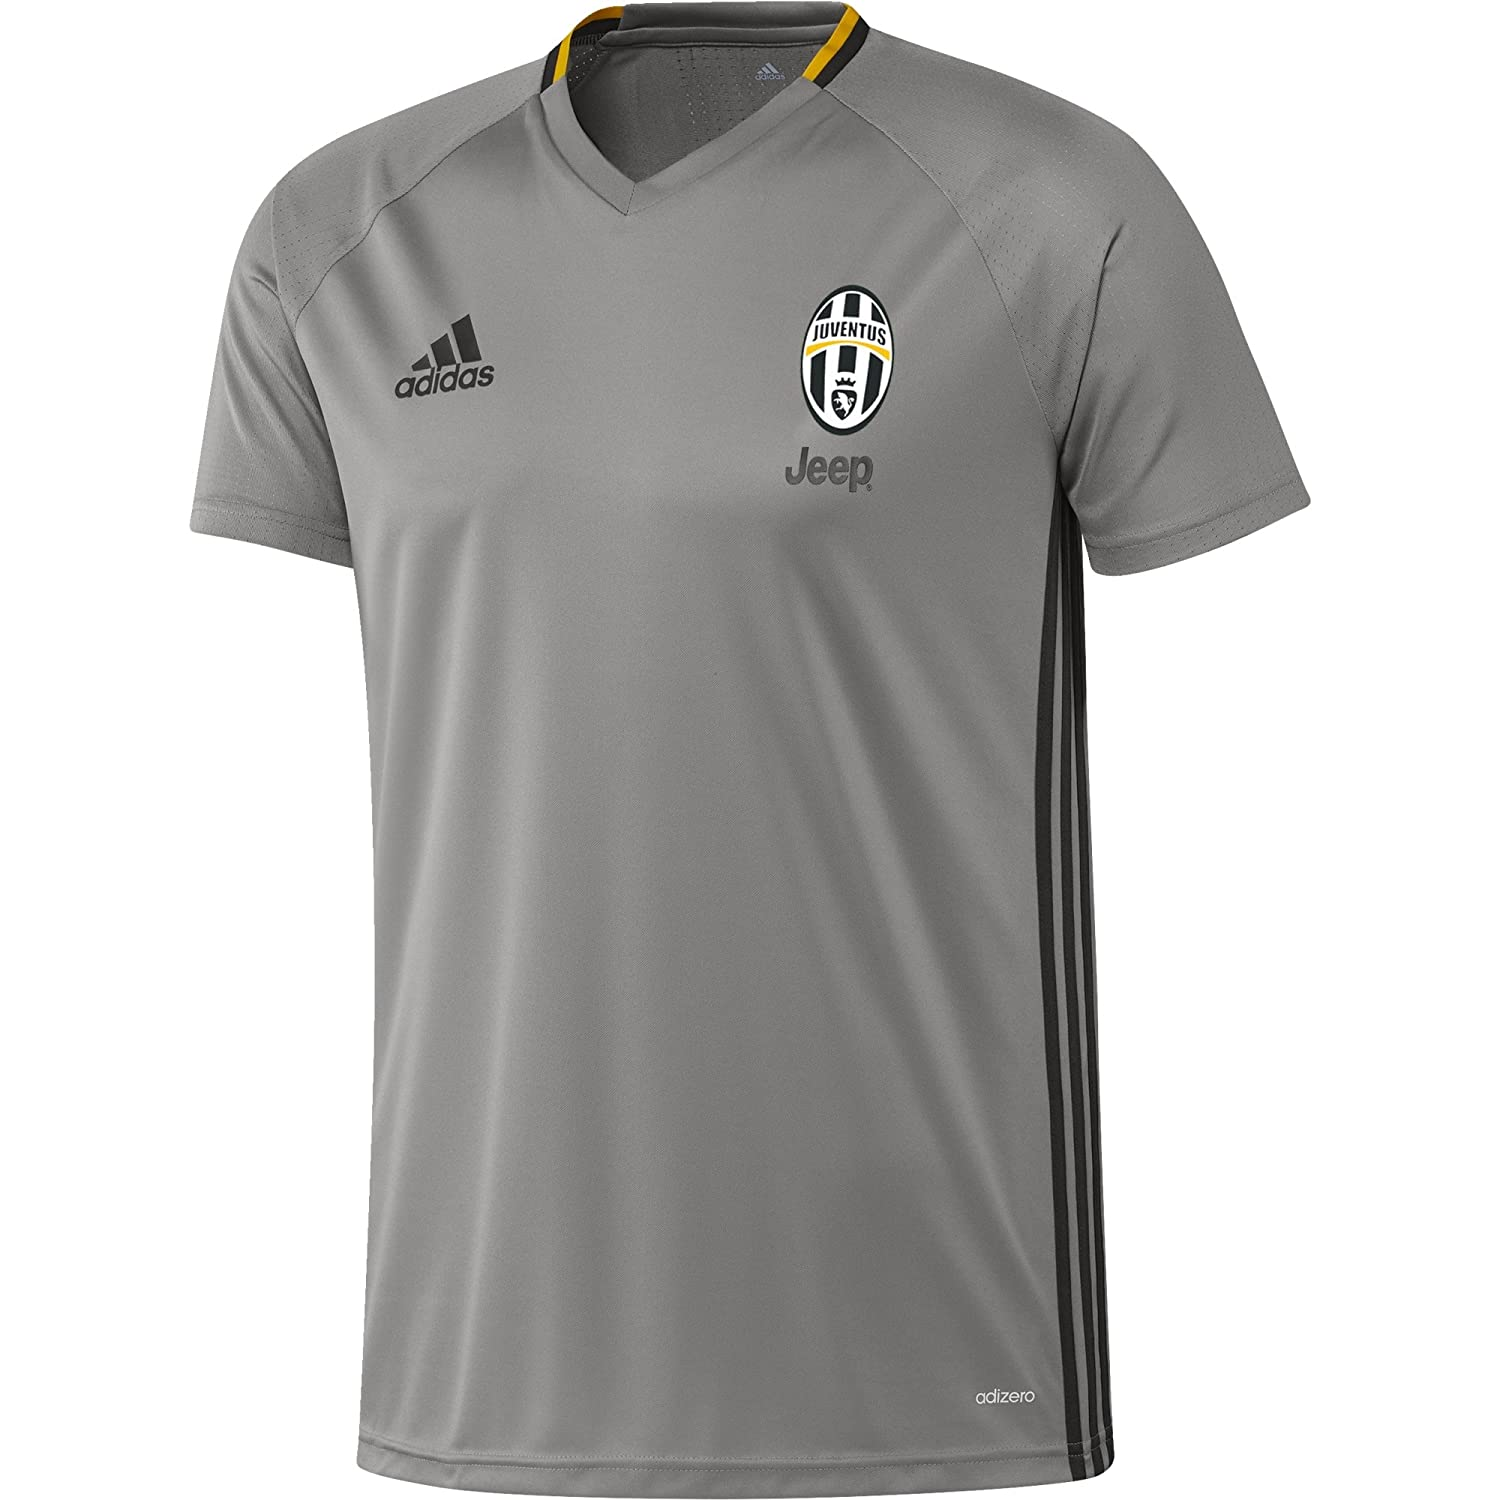 2016-2017 Juventus Adidas Training Shirt (Grey) B01I1C6642Grey Small 36-38\